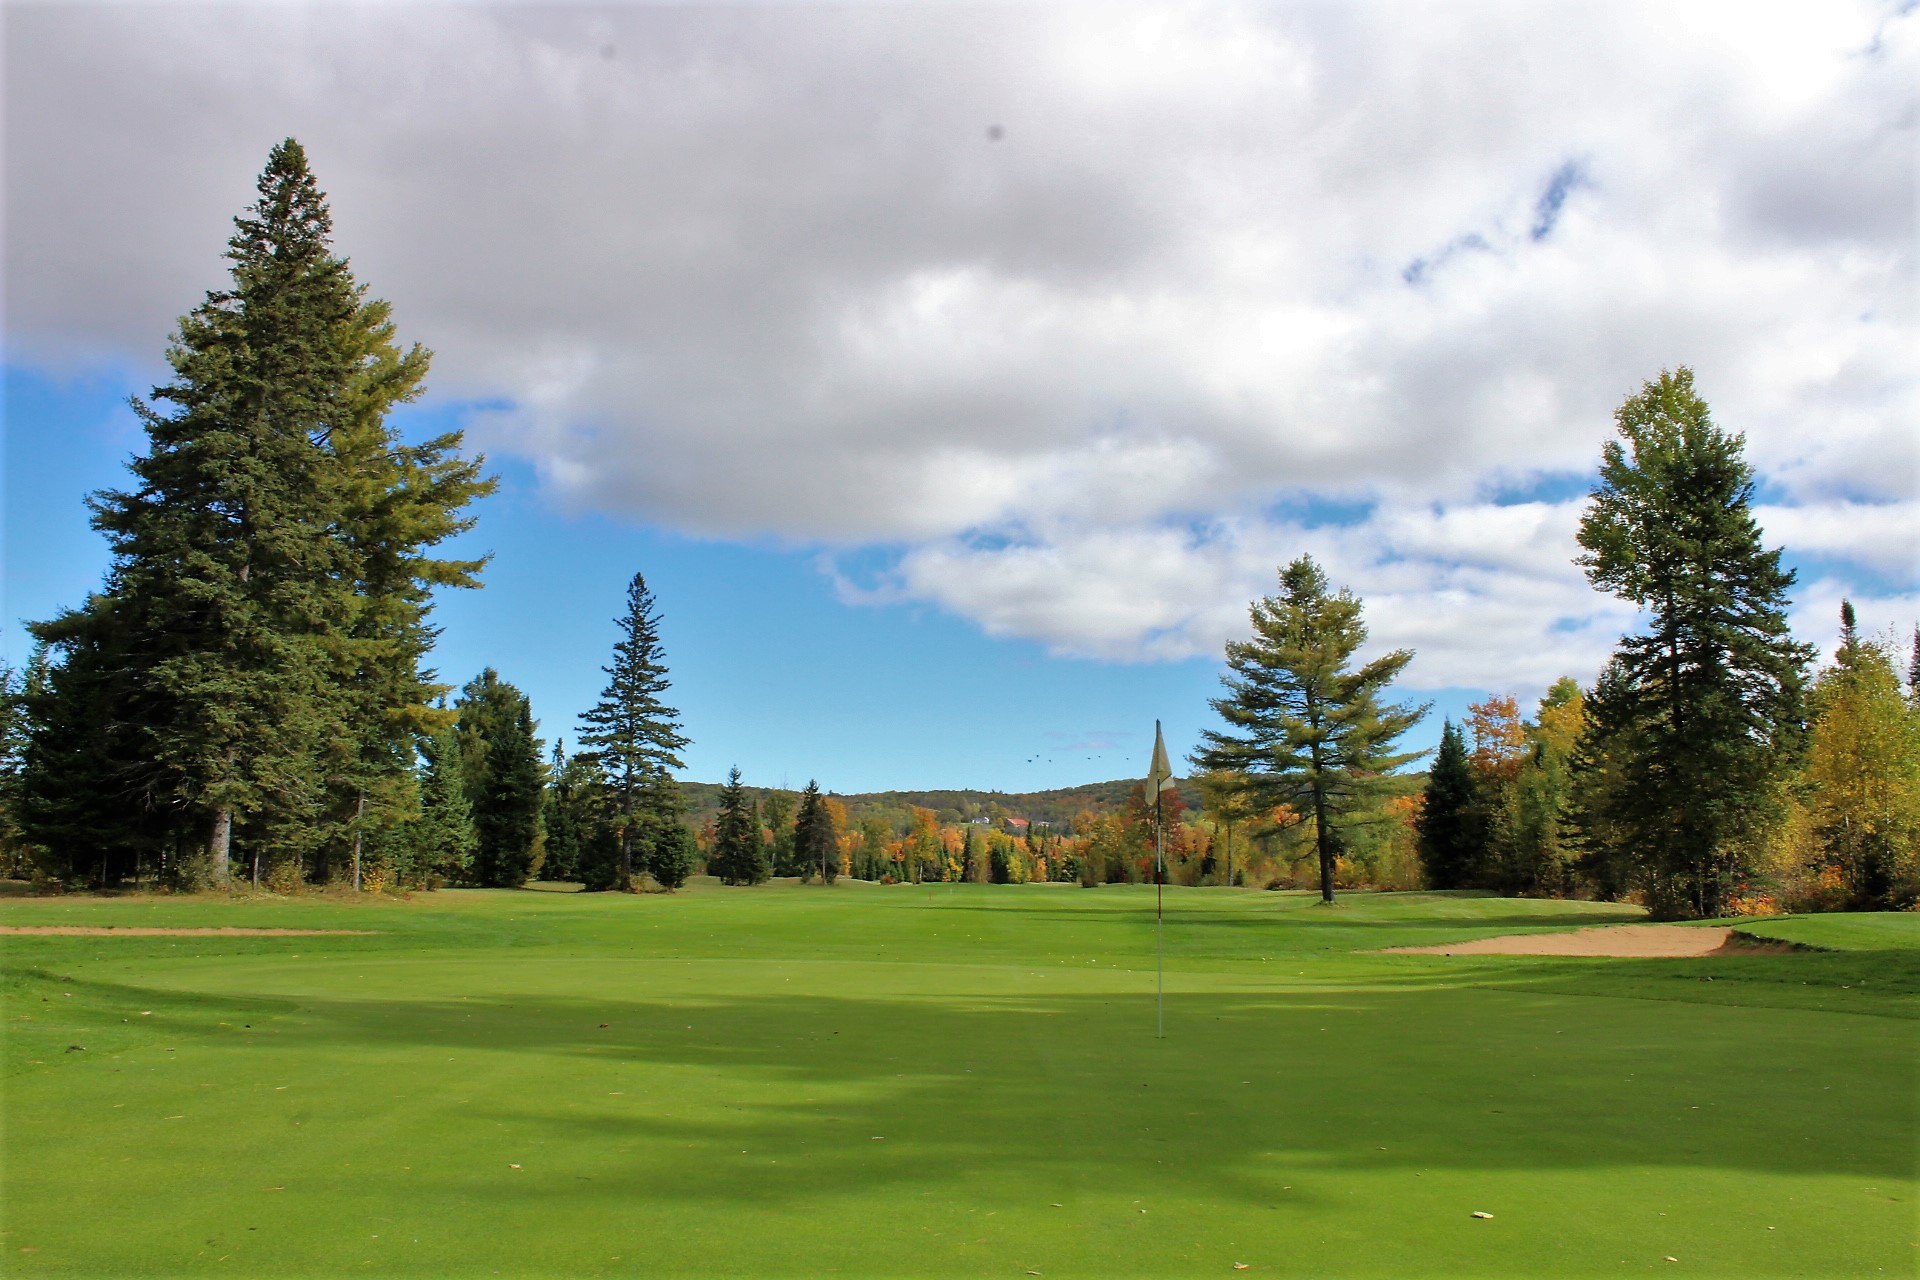 Golf Bancroft Ridge - a great golf experince in the heart of